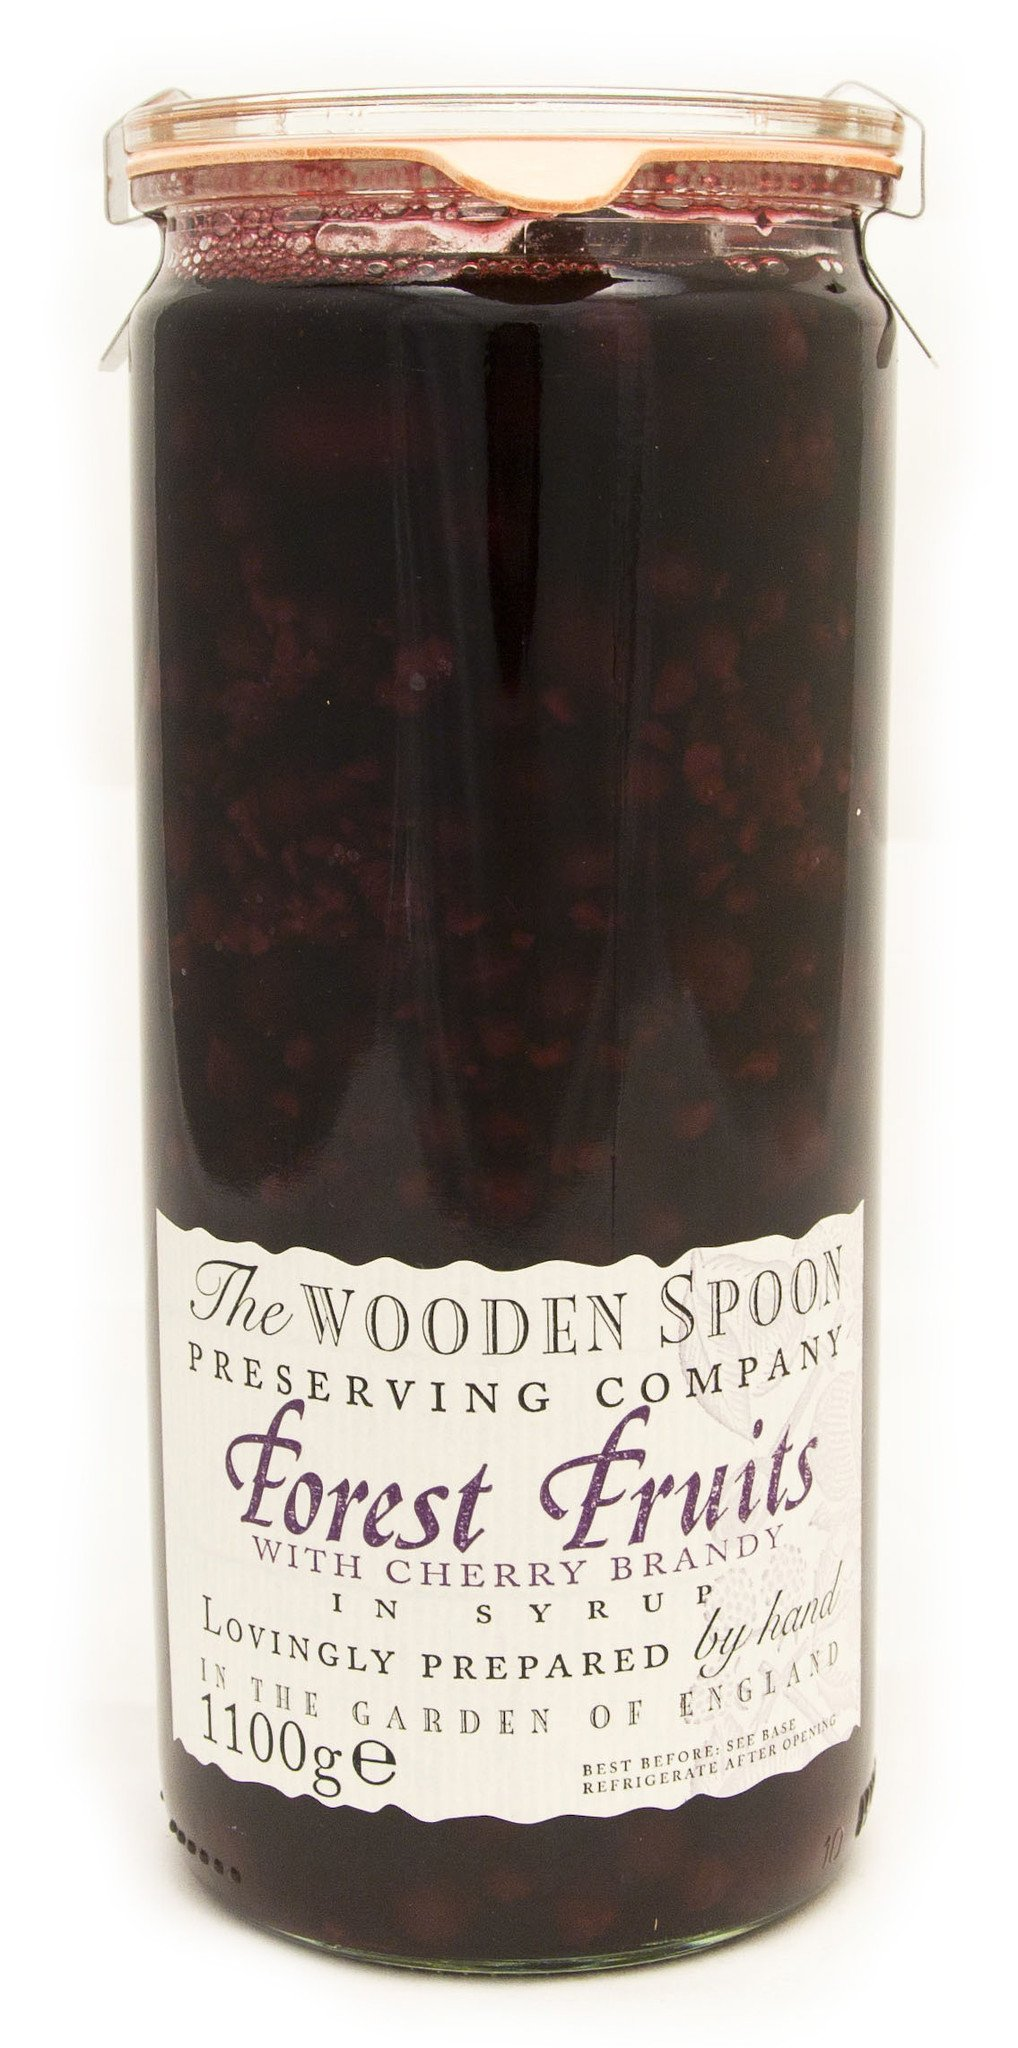 Forest Fruits - with Cherry Brandy